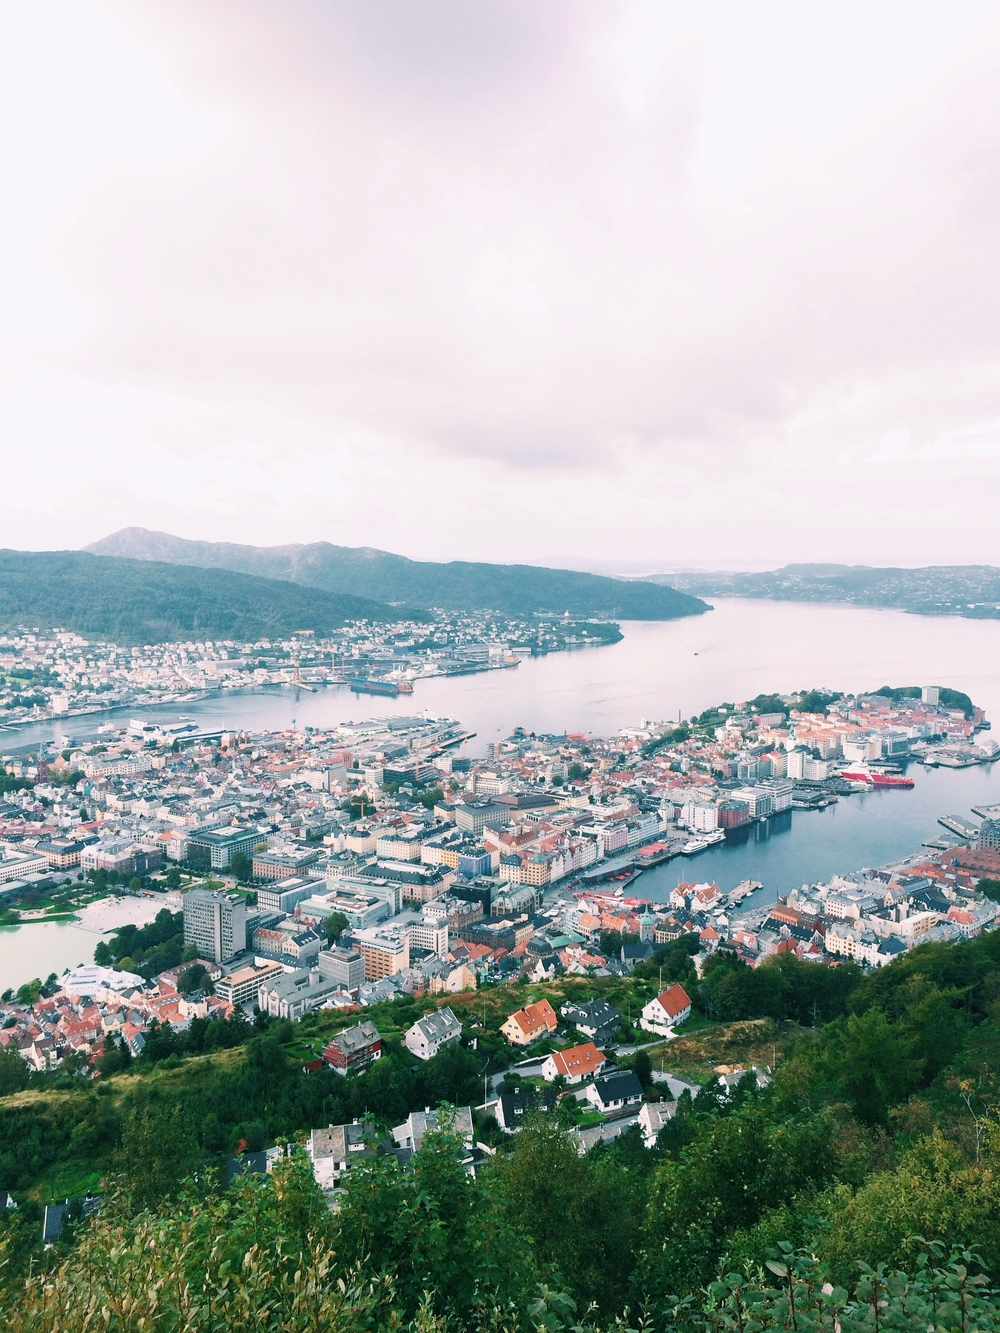 View of Bergen from the top of Mount Fløyen